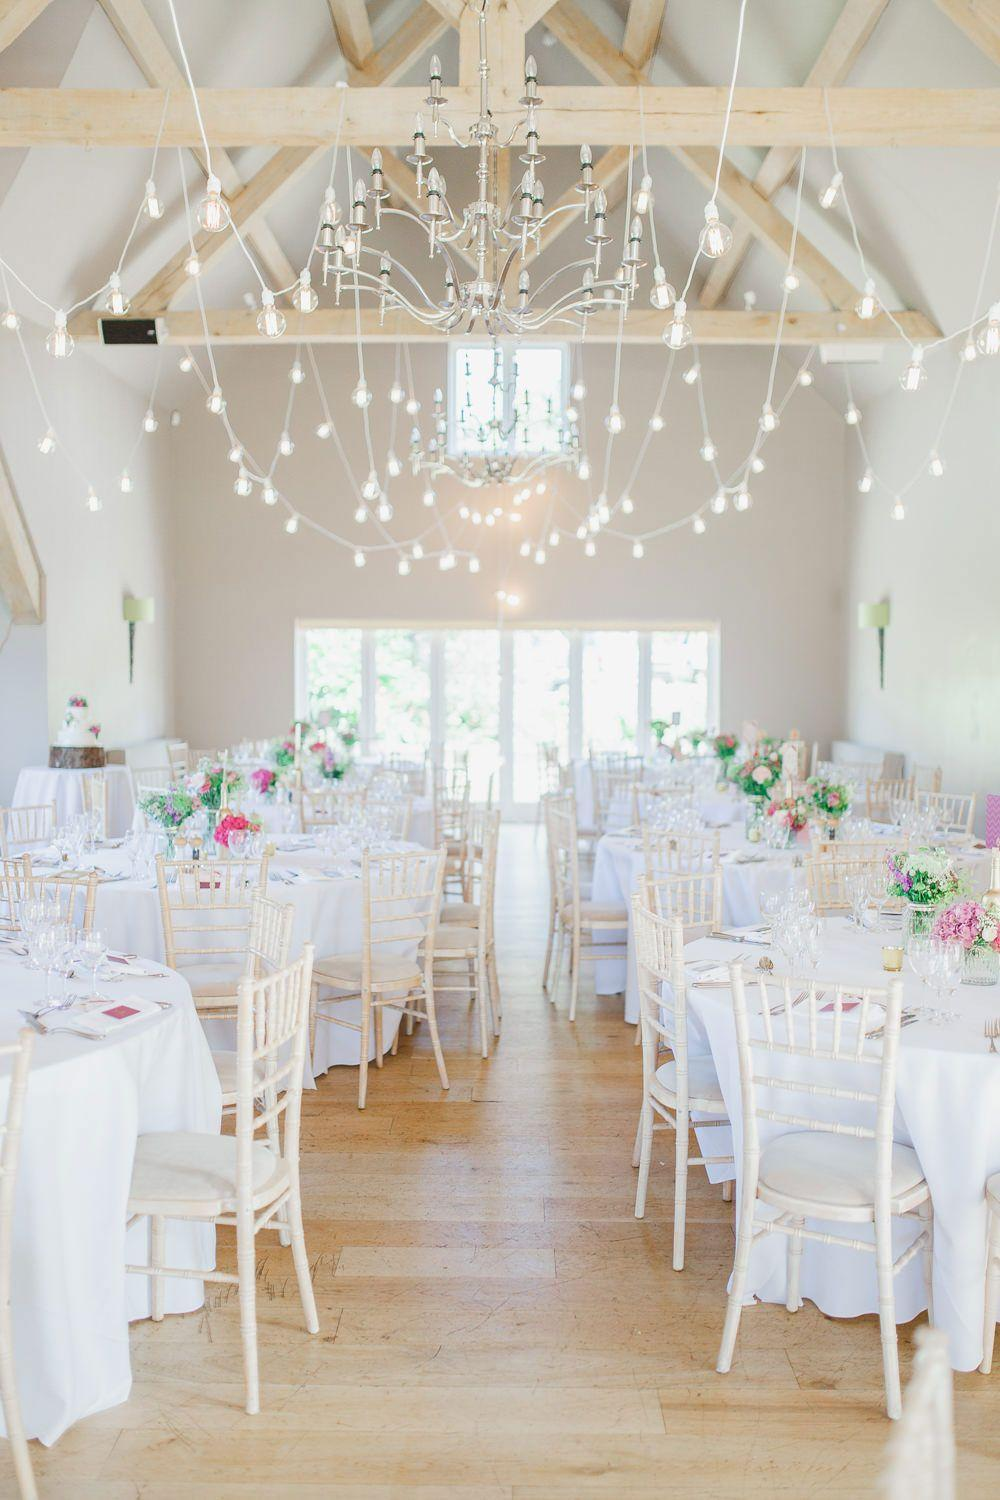 Simple wedding decoration: 95 sensational ideas to inspire 50